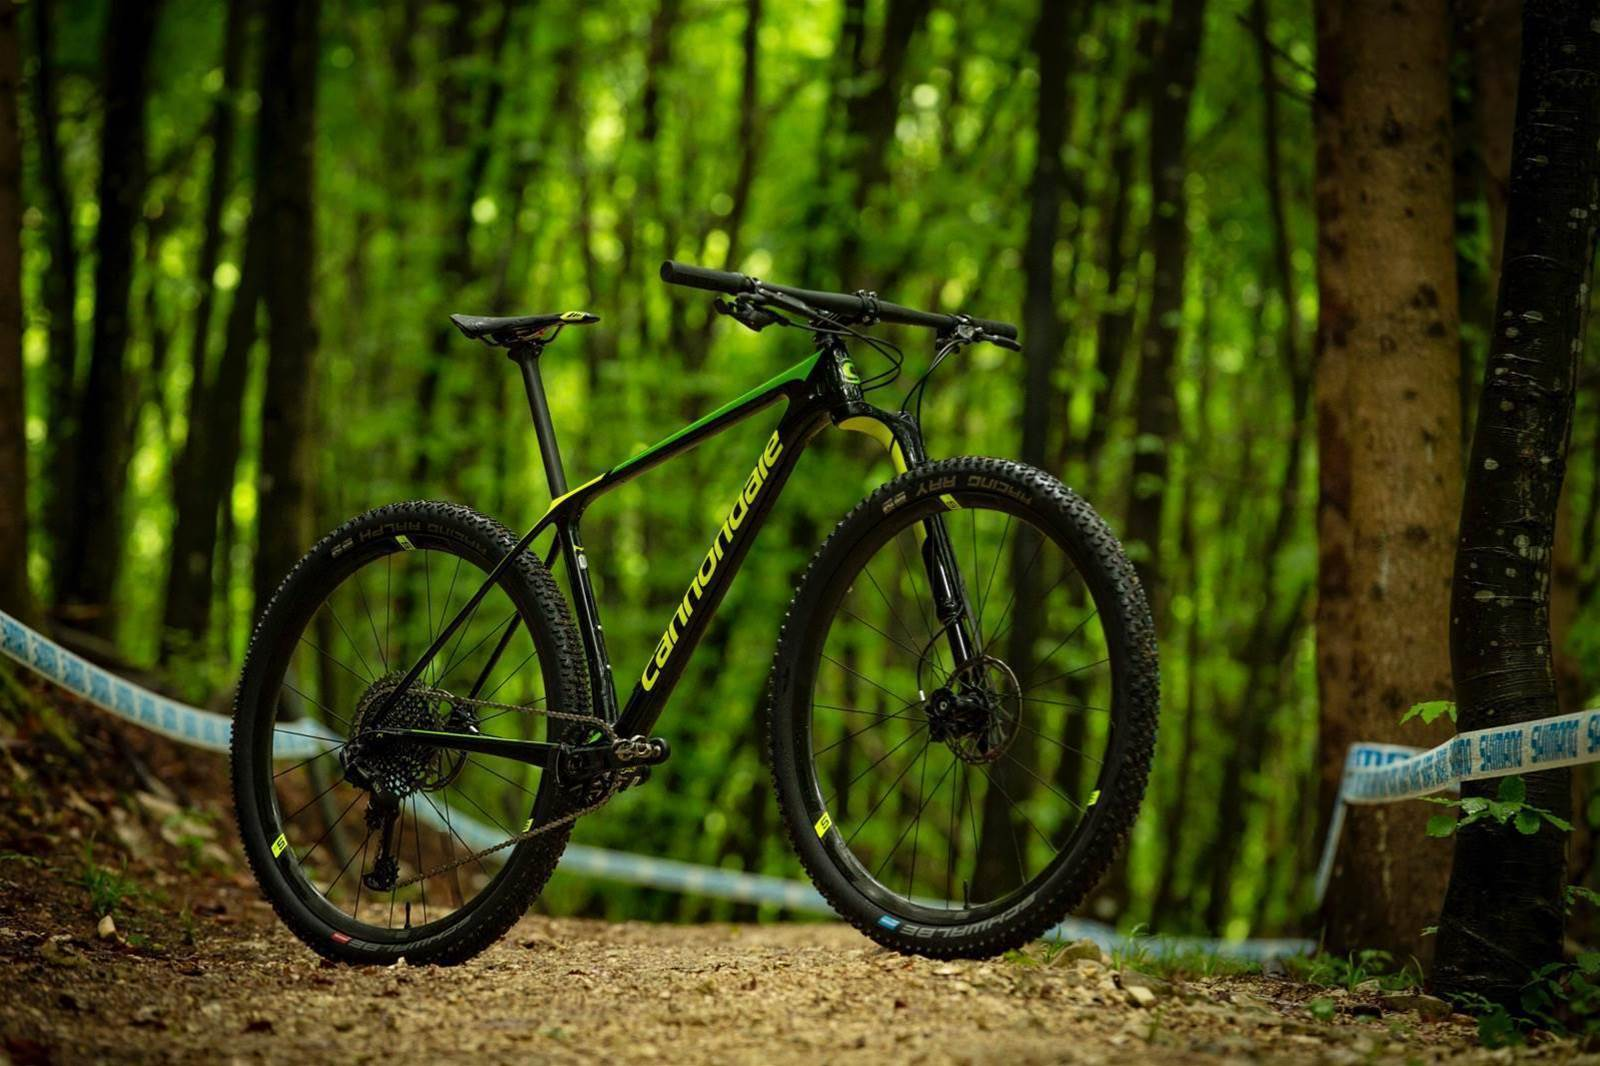 Cannondale's latest MTB